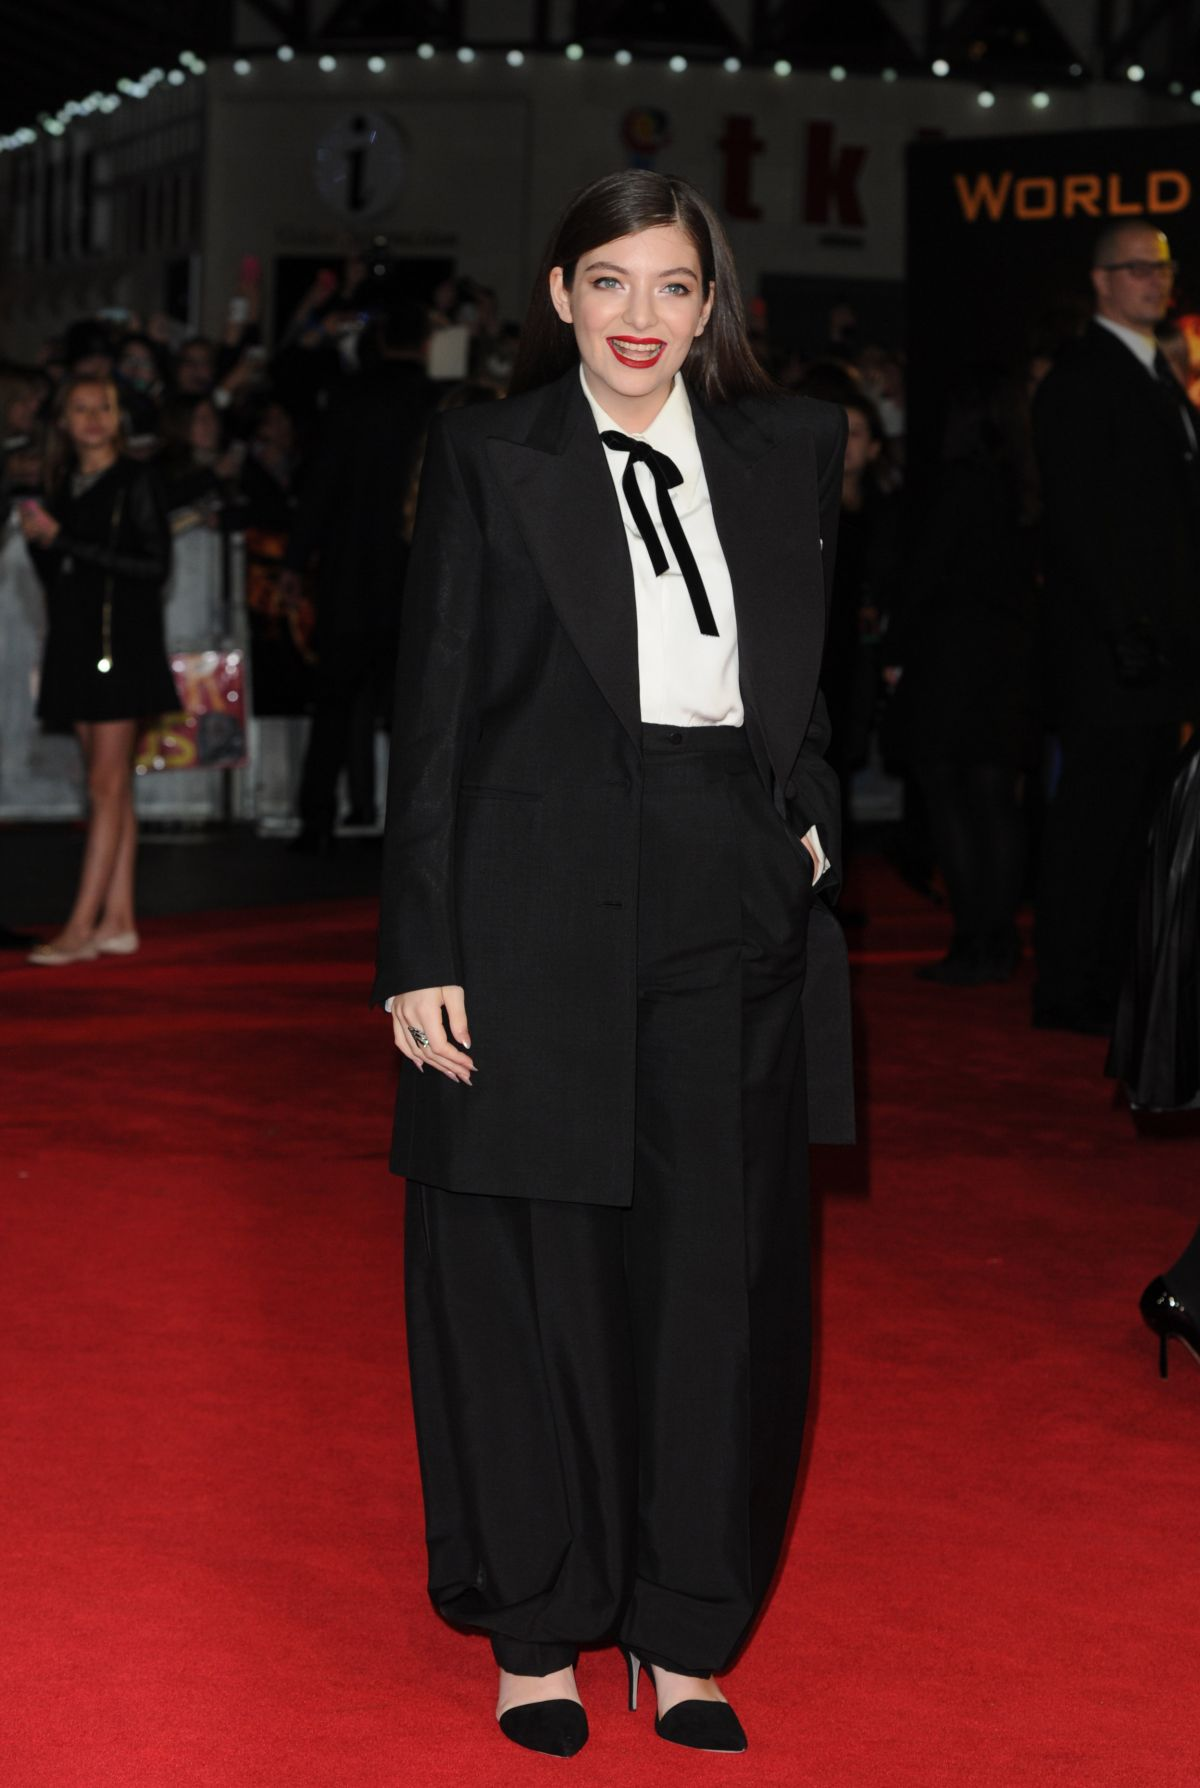 LORDE at The Hunger Games: Mockingjay Part 1 Premiere in London